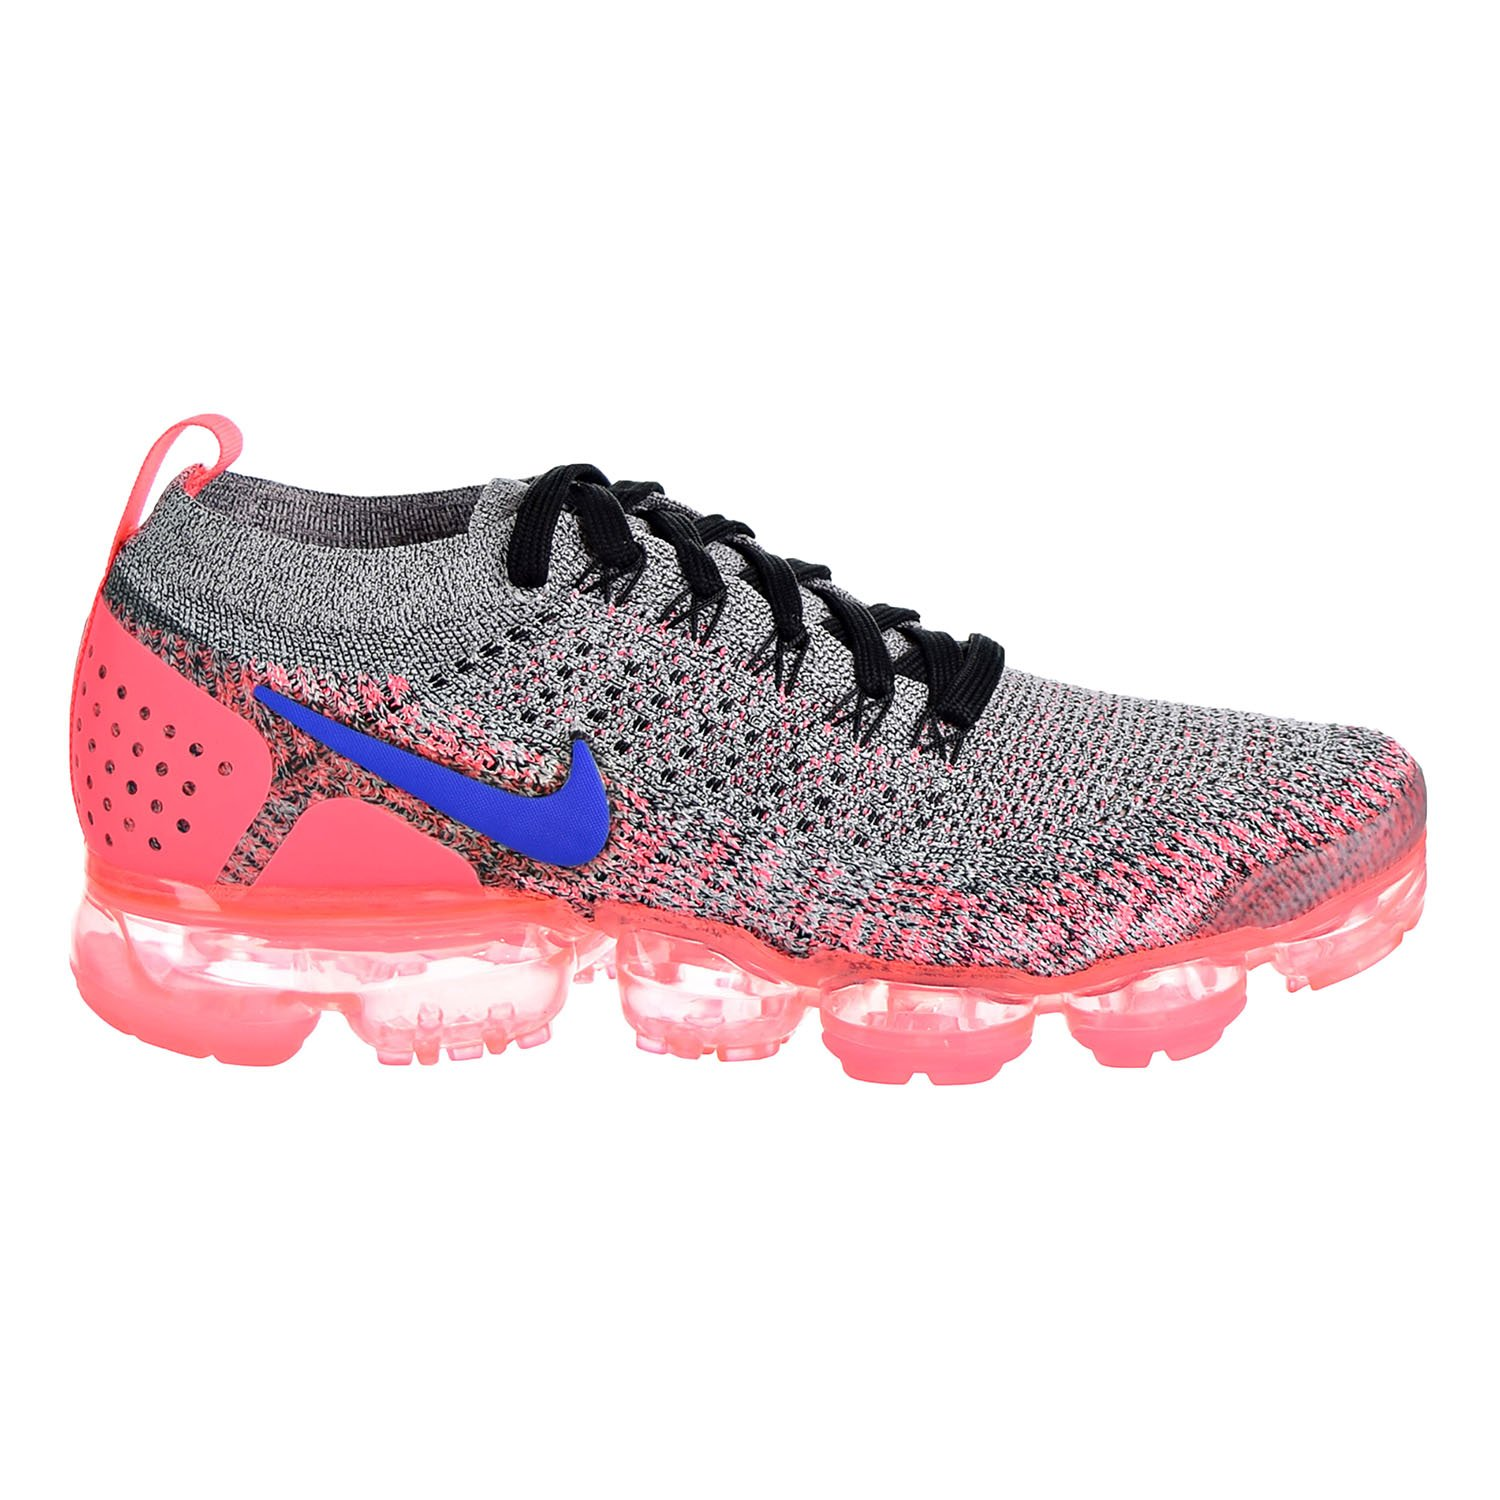 new concept 5b397 c68a1 Amazon.com   NIKE Air Vapor Max Flyknit 2 Women s Shoes  White Ultramarine Hot Punch 942843-104   Running